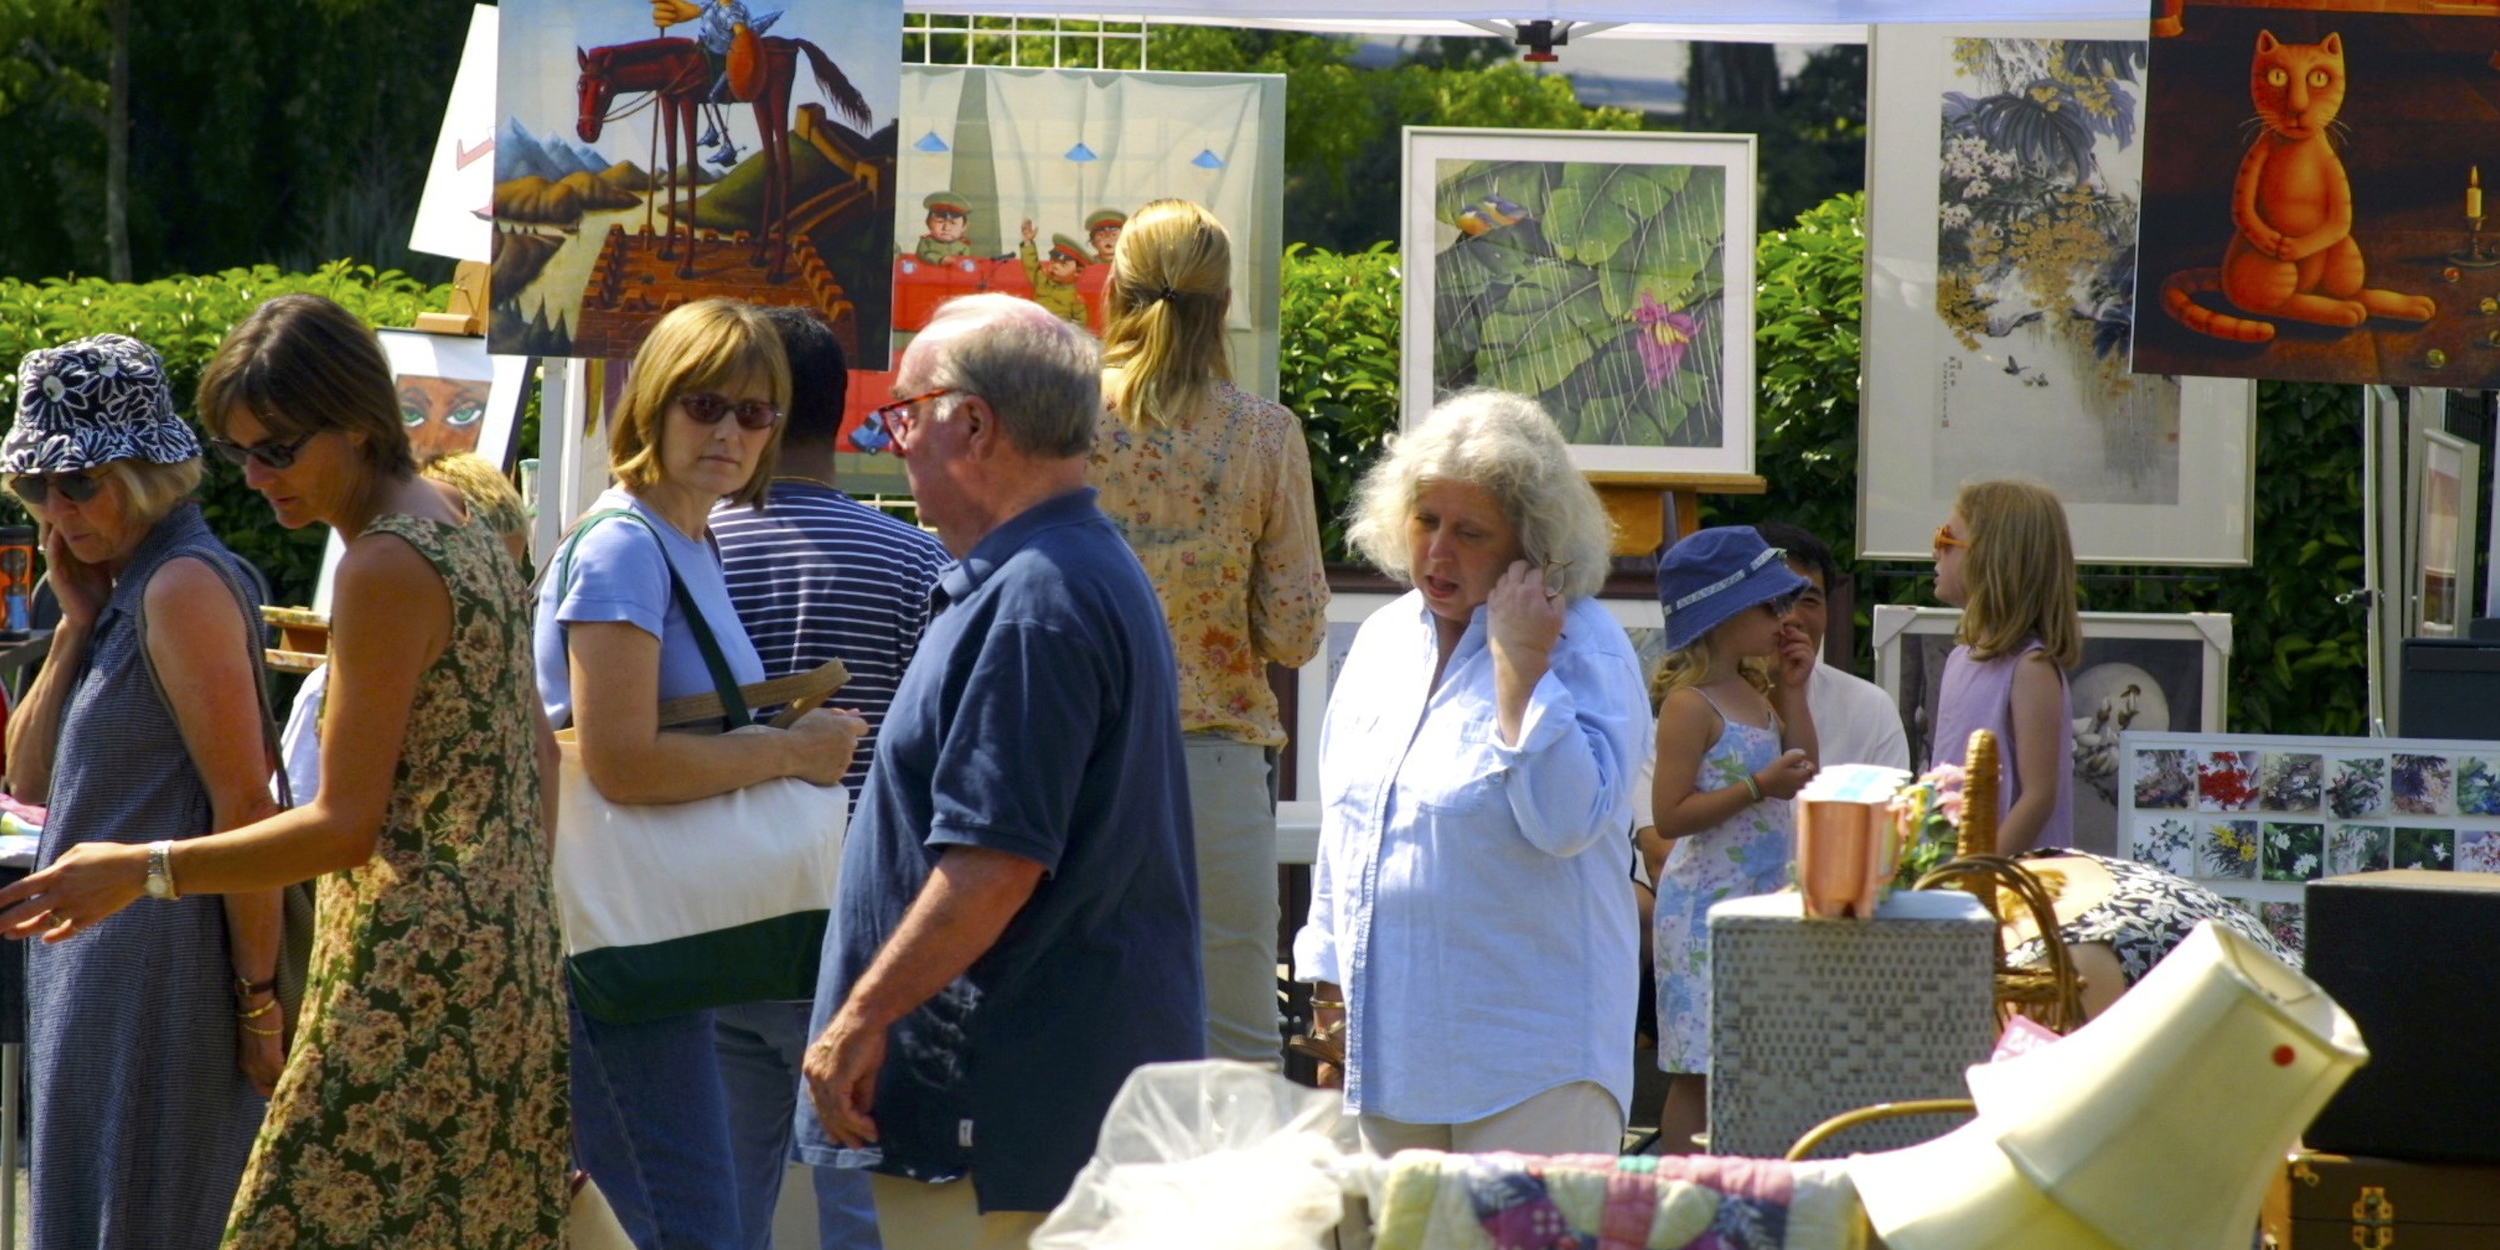 VINTAGE, VINTAGE, ANTIQUE, ORIGINAL AND OUTSIDER ART ALL MAKES AN APPEARANCES HERE